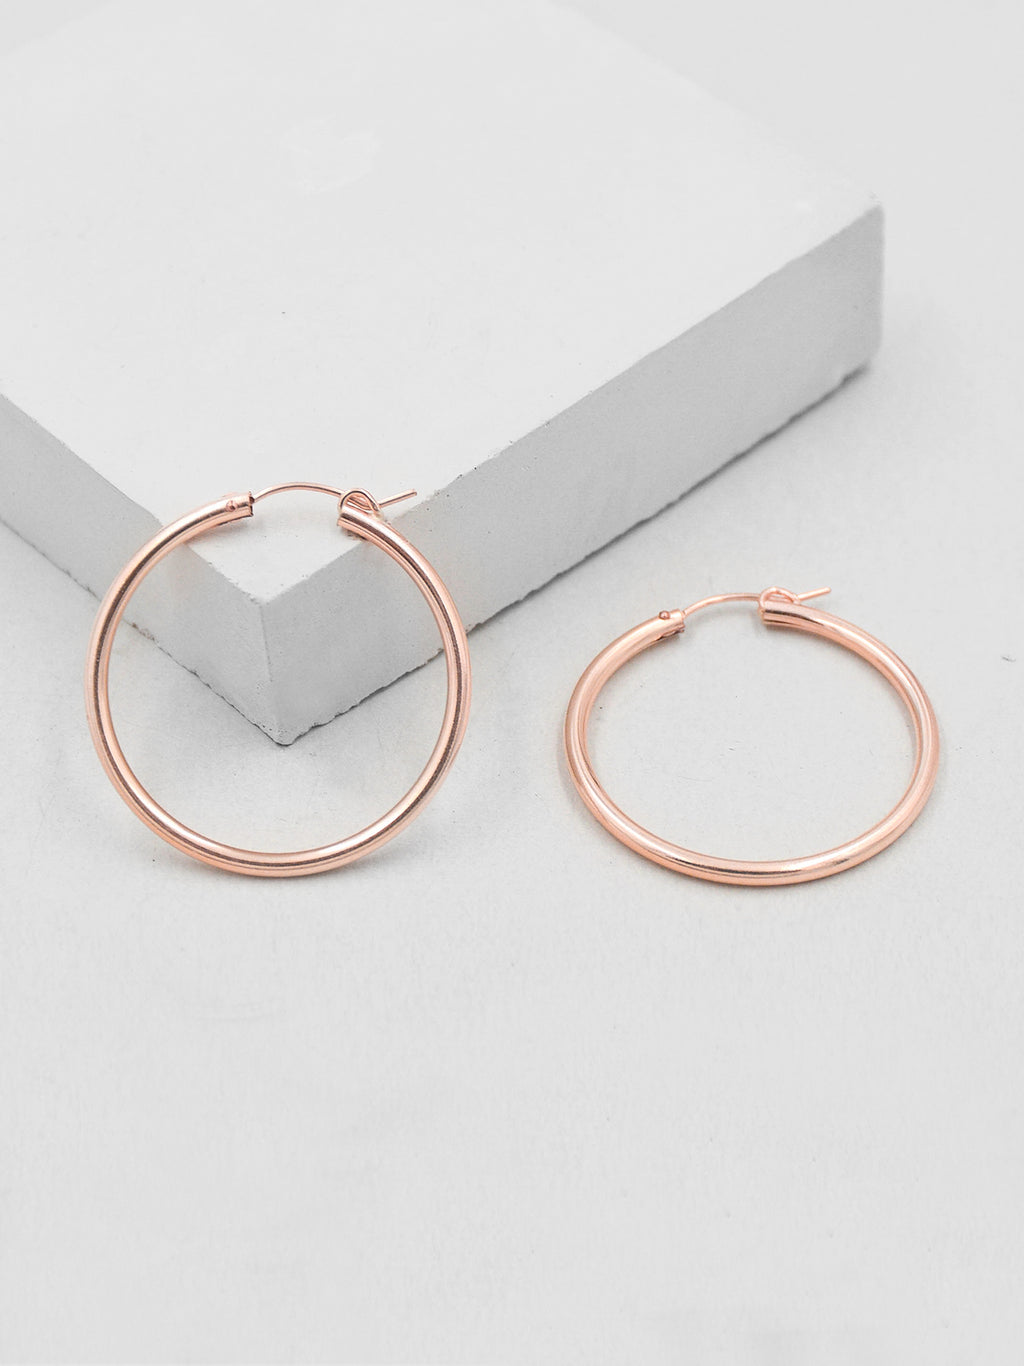 Hoop Earrings - Rose Gold Filled